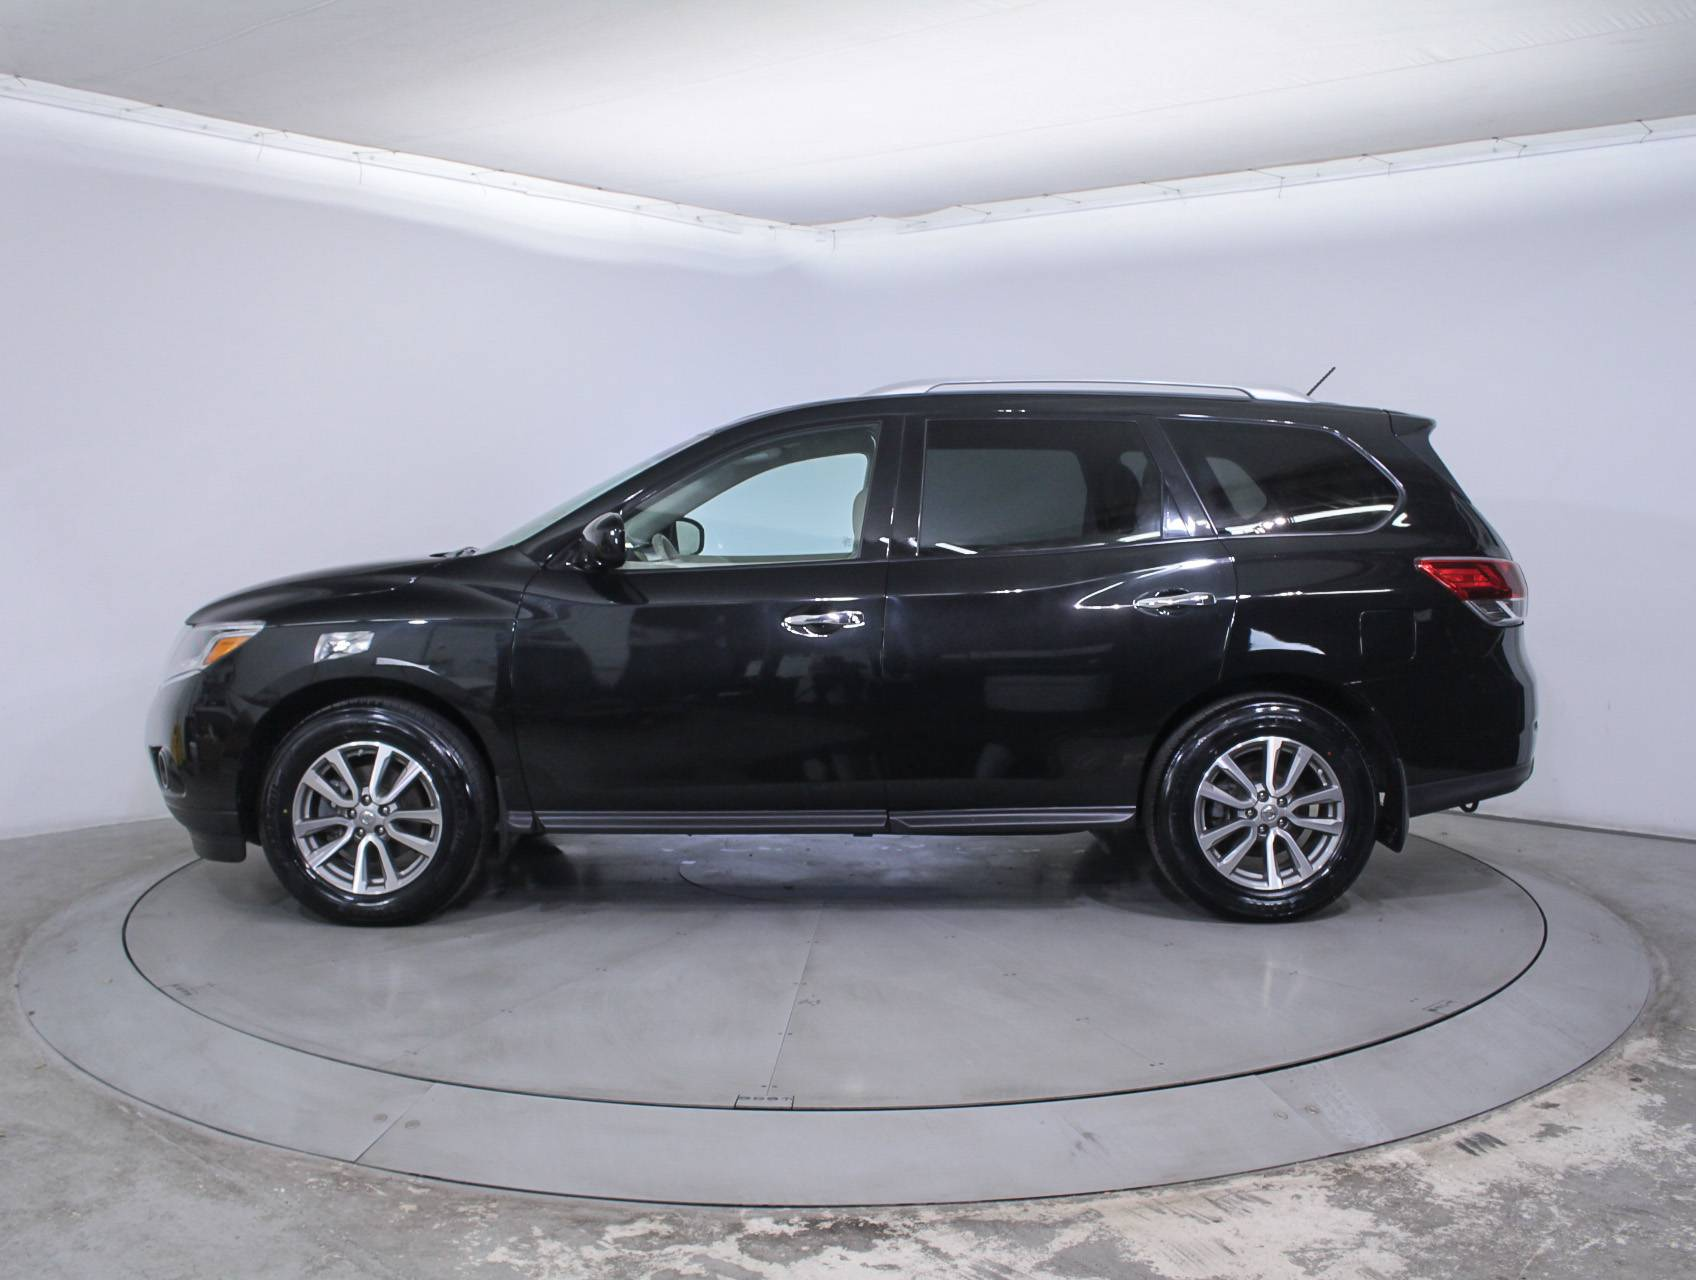 used 2015 nissan pathfinder s suv for  in miami, fl | 86795